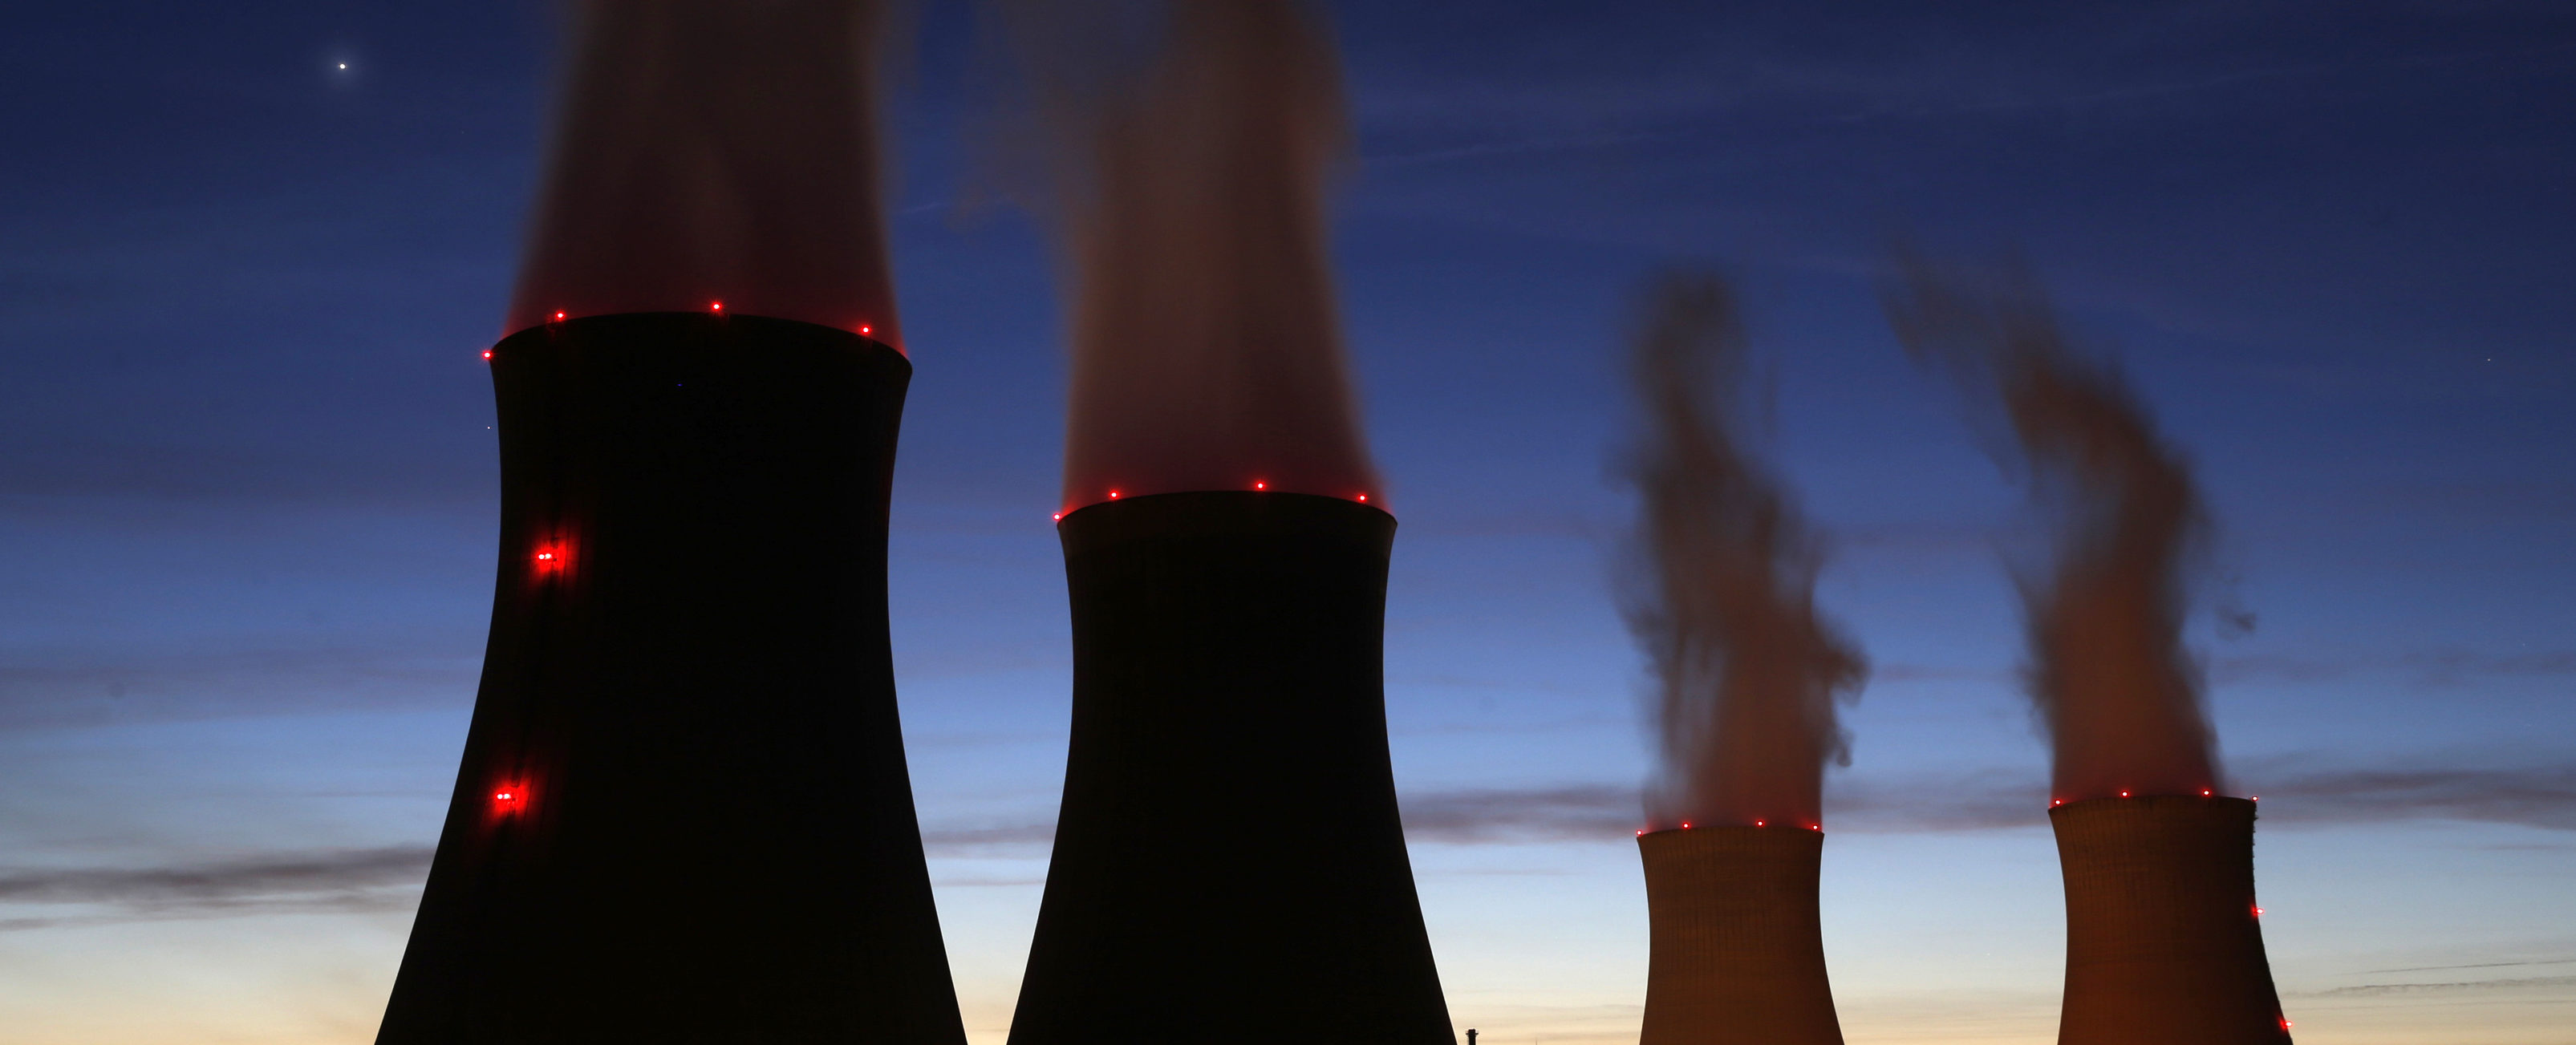 Steam rises at night from the cooling towers of the Electricite de France (EDF) nuclear power station in Dampierre-en-Burly, March 8, 2015. Picture taken March 8, 2015. REUTERS/Christian Hartmann